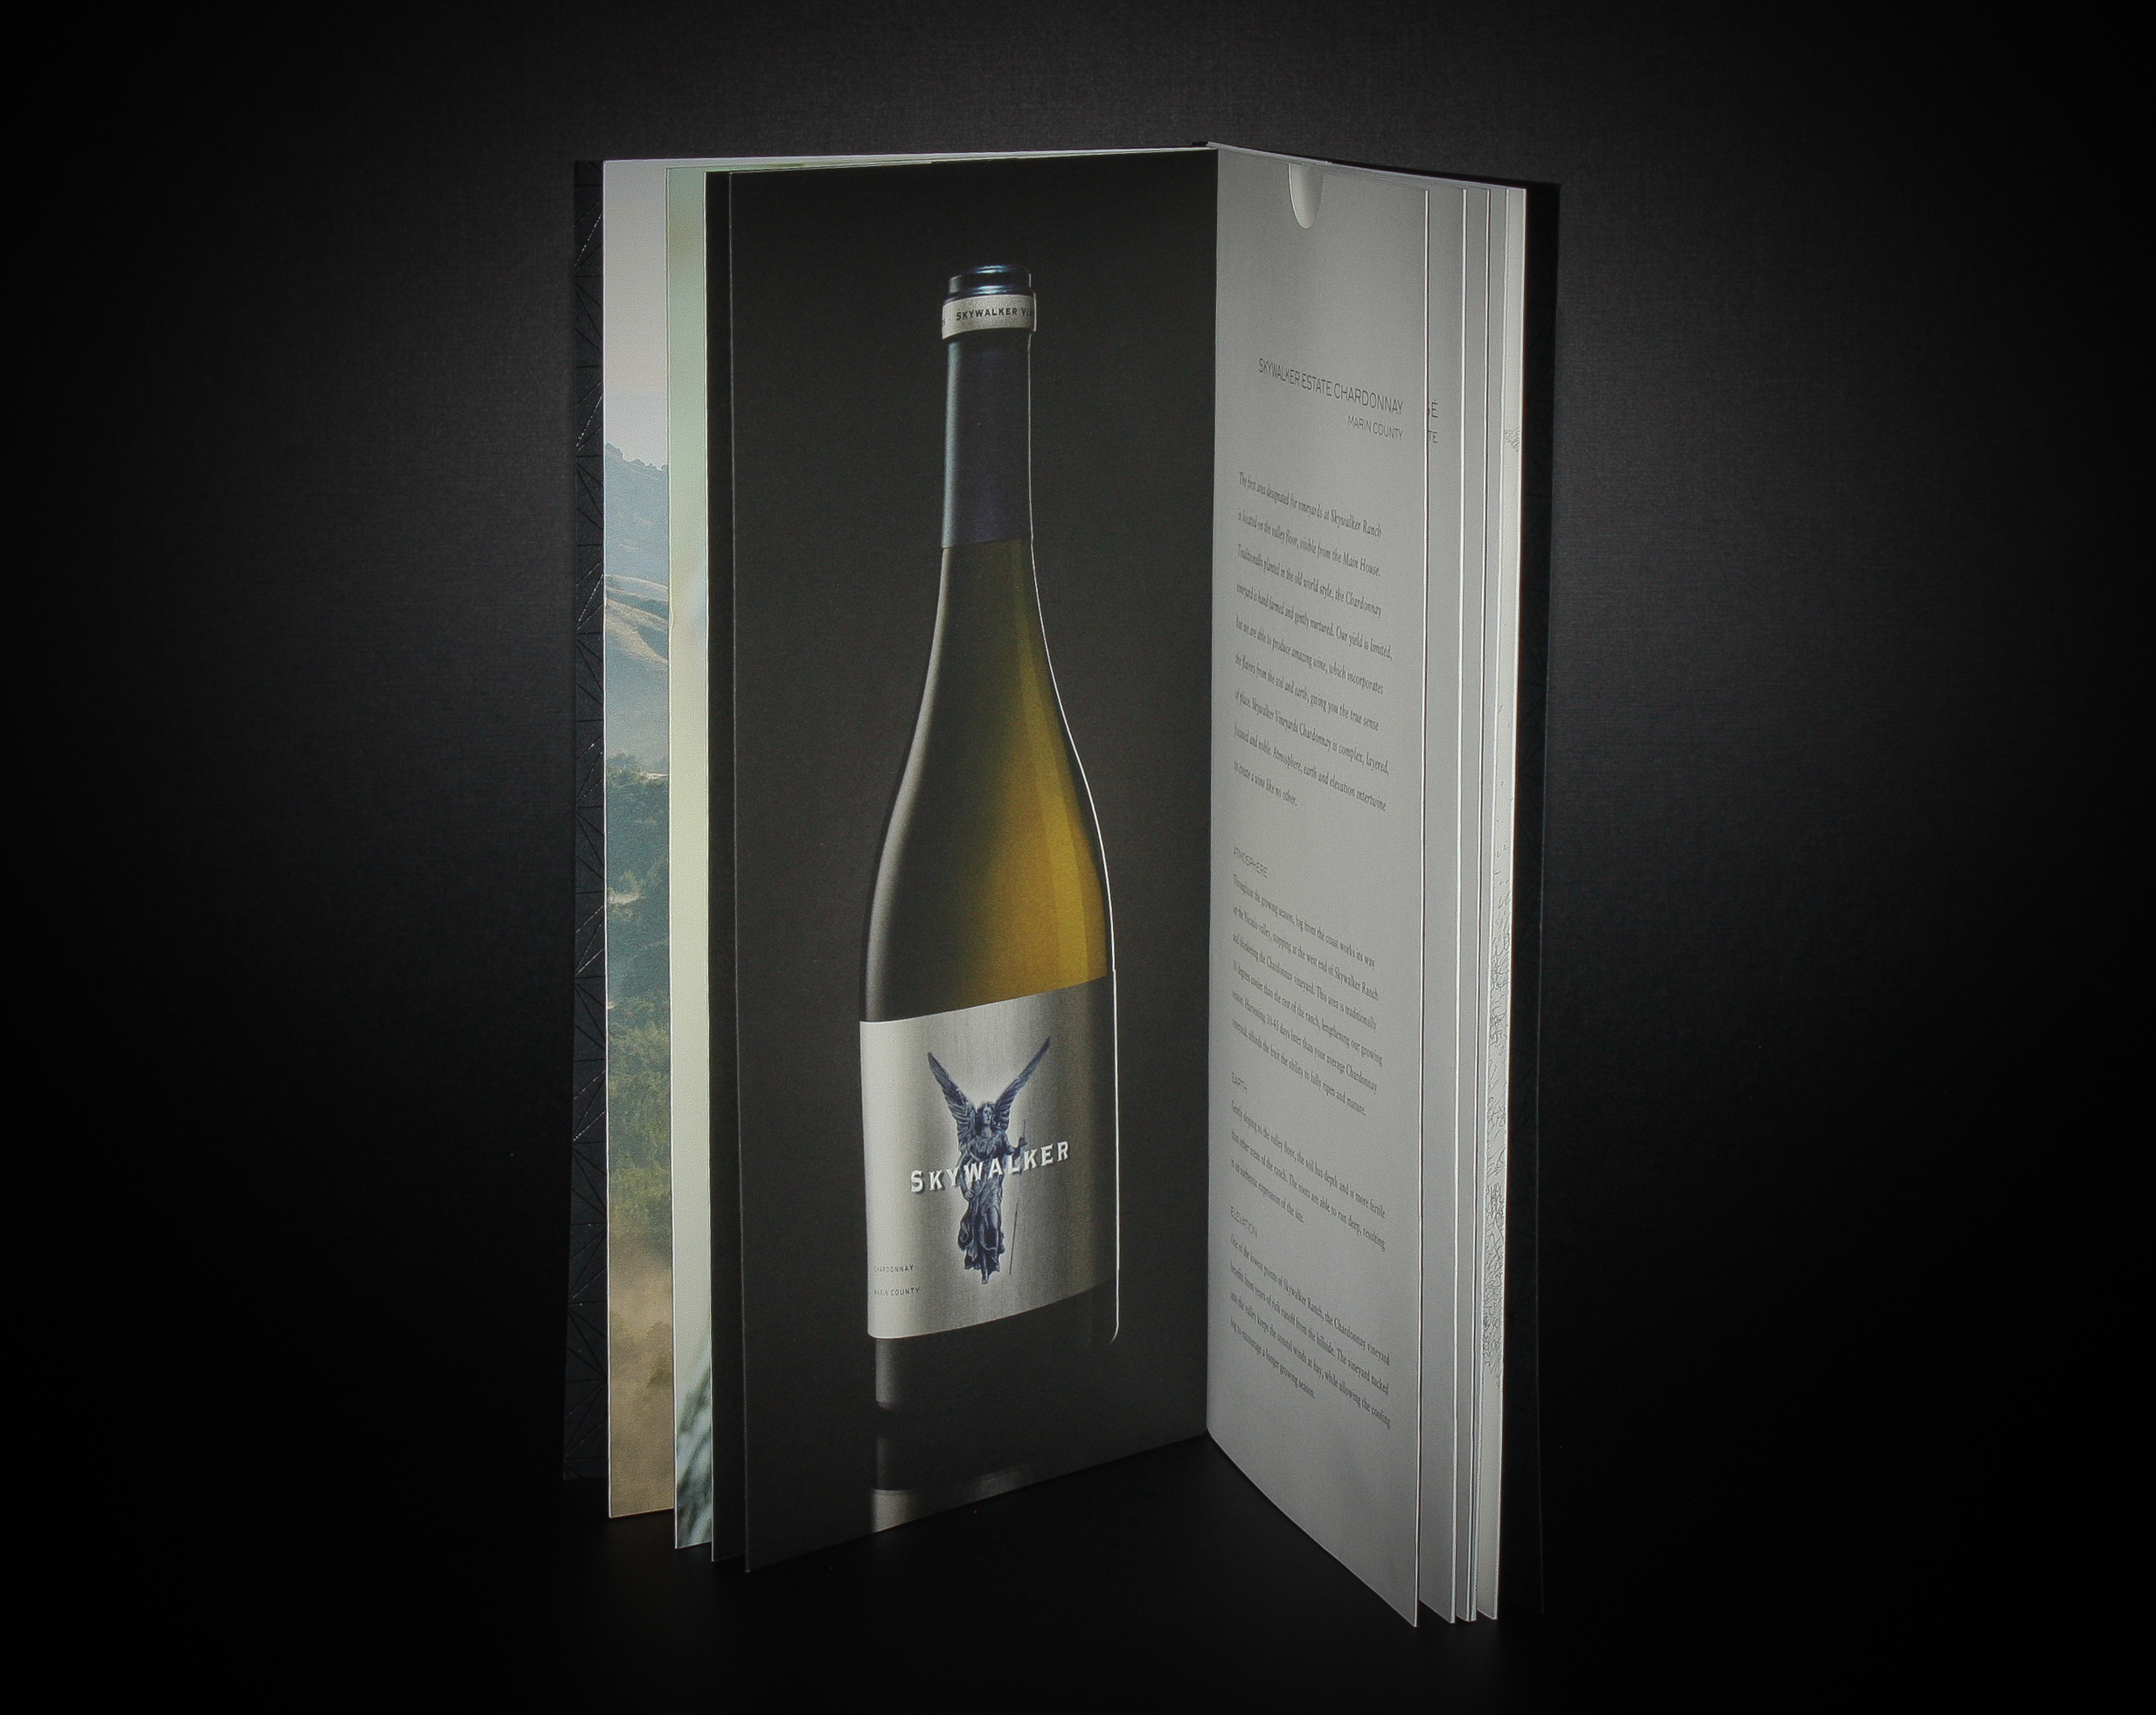 Skywalker Wines Client:  Third Bay Letterpress  Black foiled exterior cover. Die-cut and converted interior pocket pages. Assembly with eyelets.